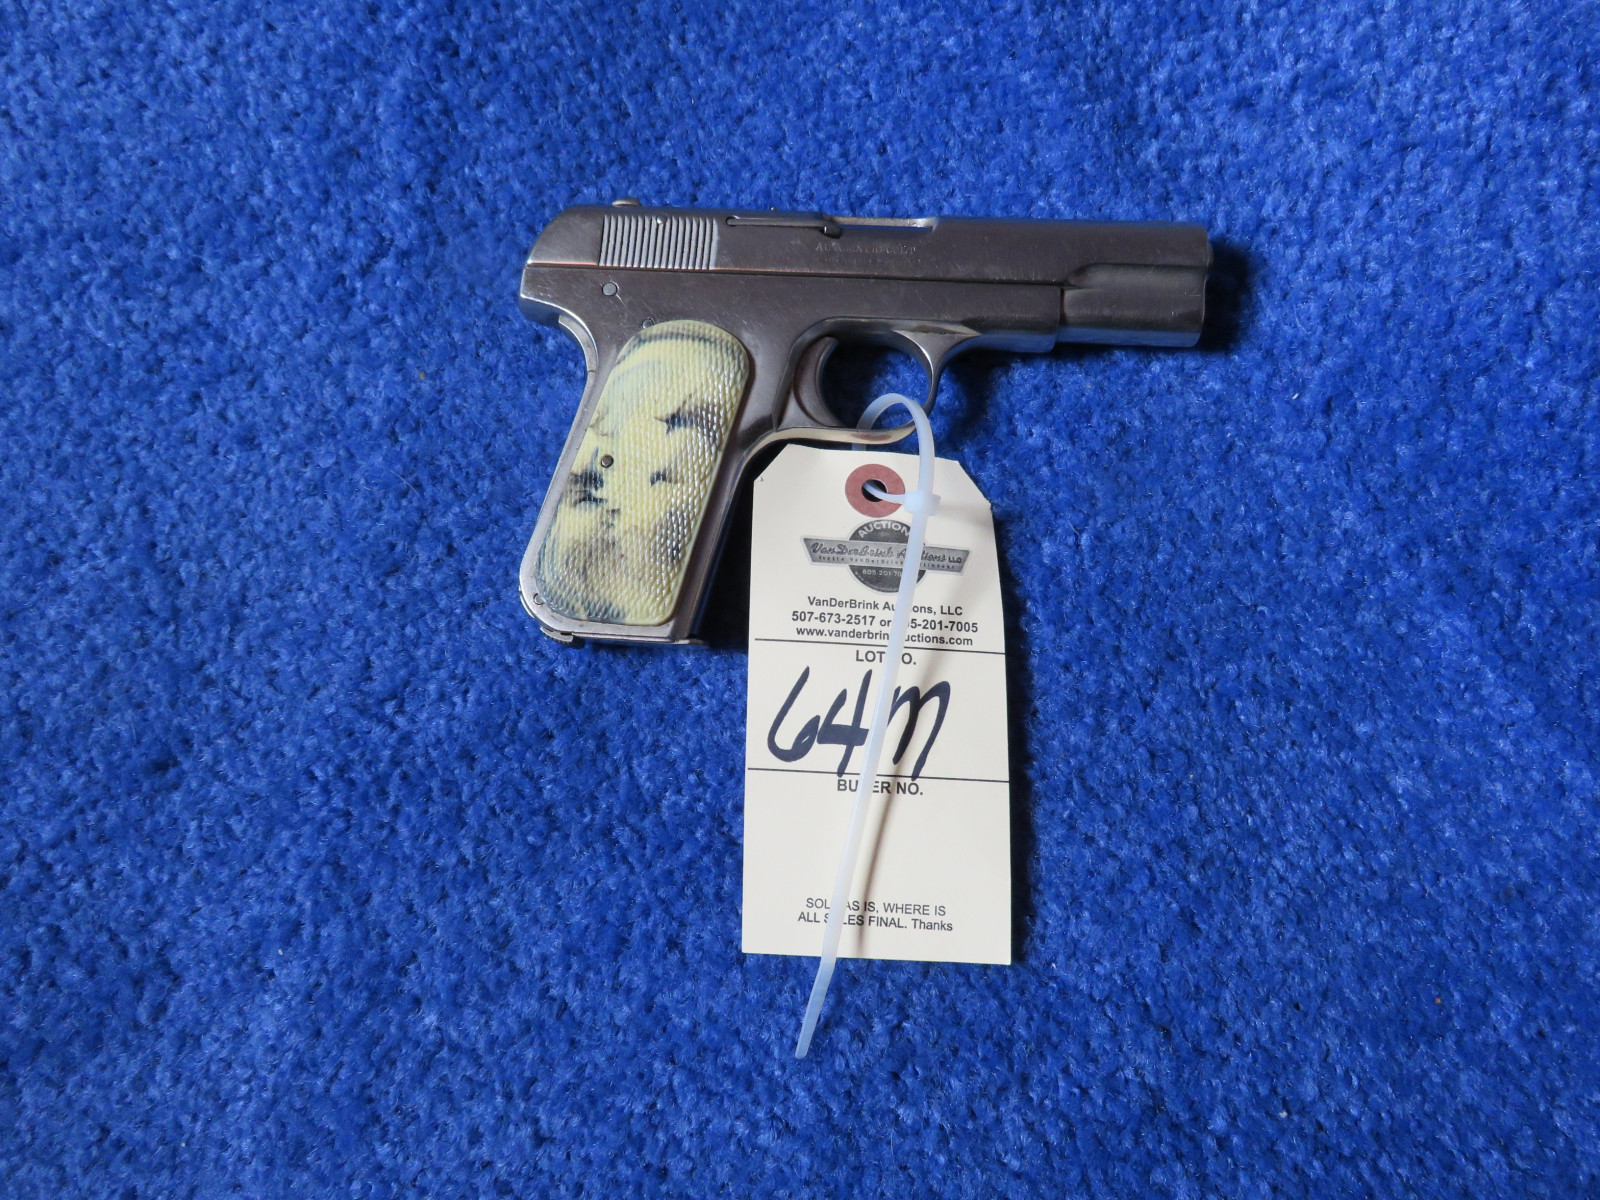 Colt Pocket Positive .32 Cal Semi-Auto Handgun - Image 1